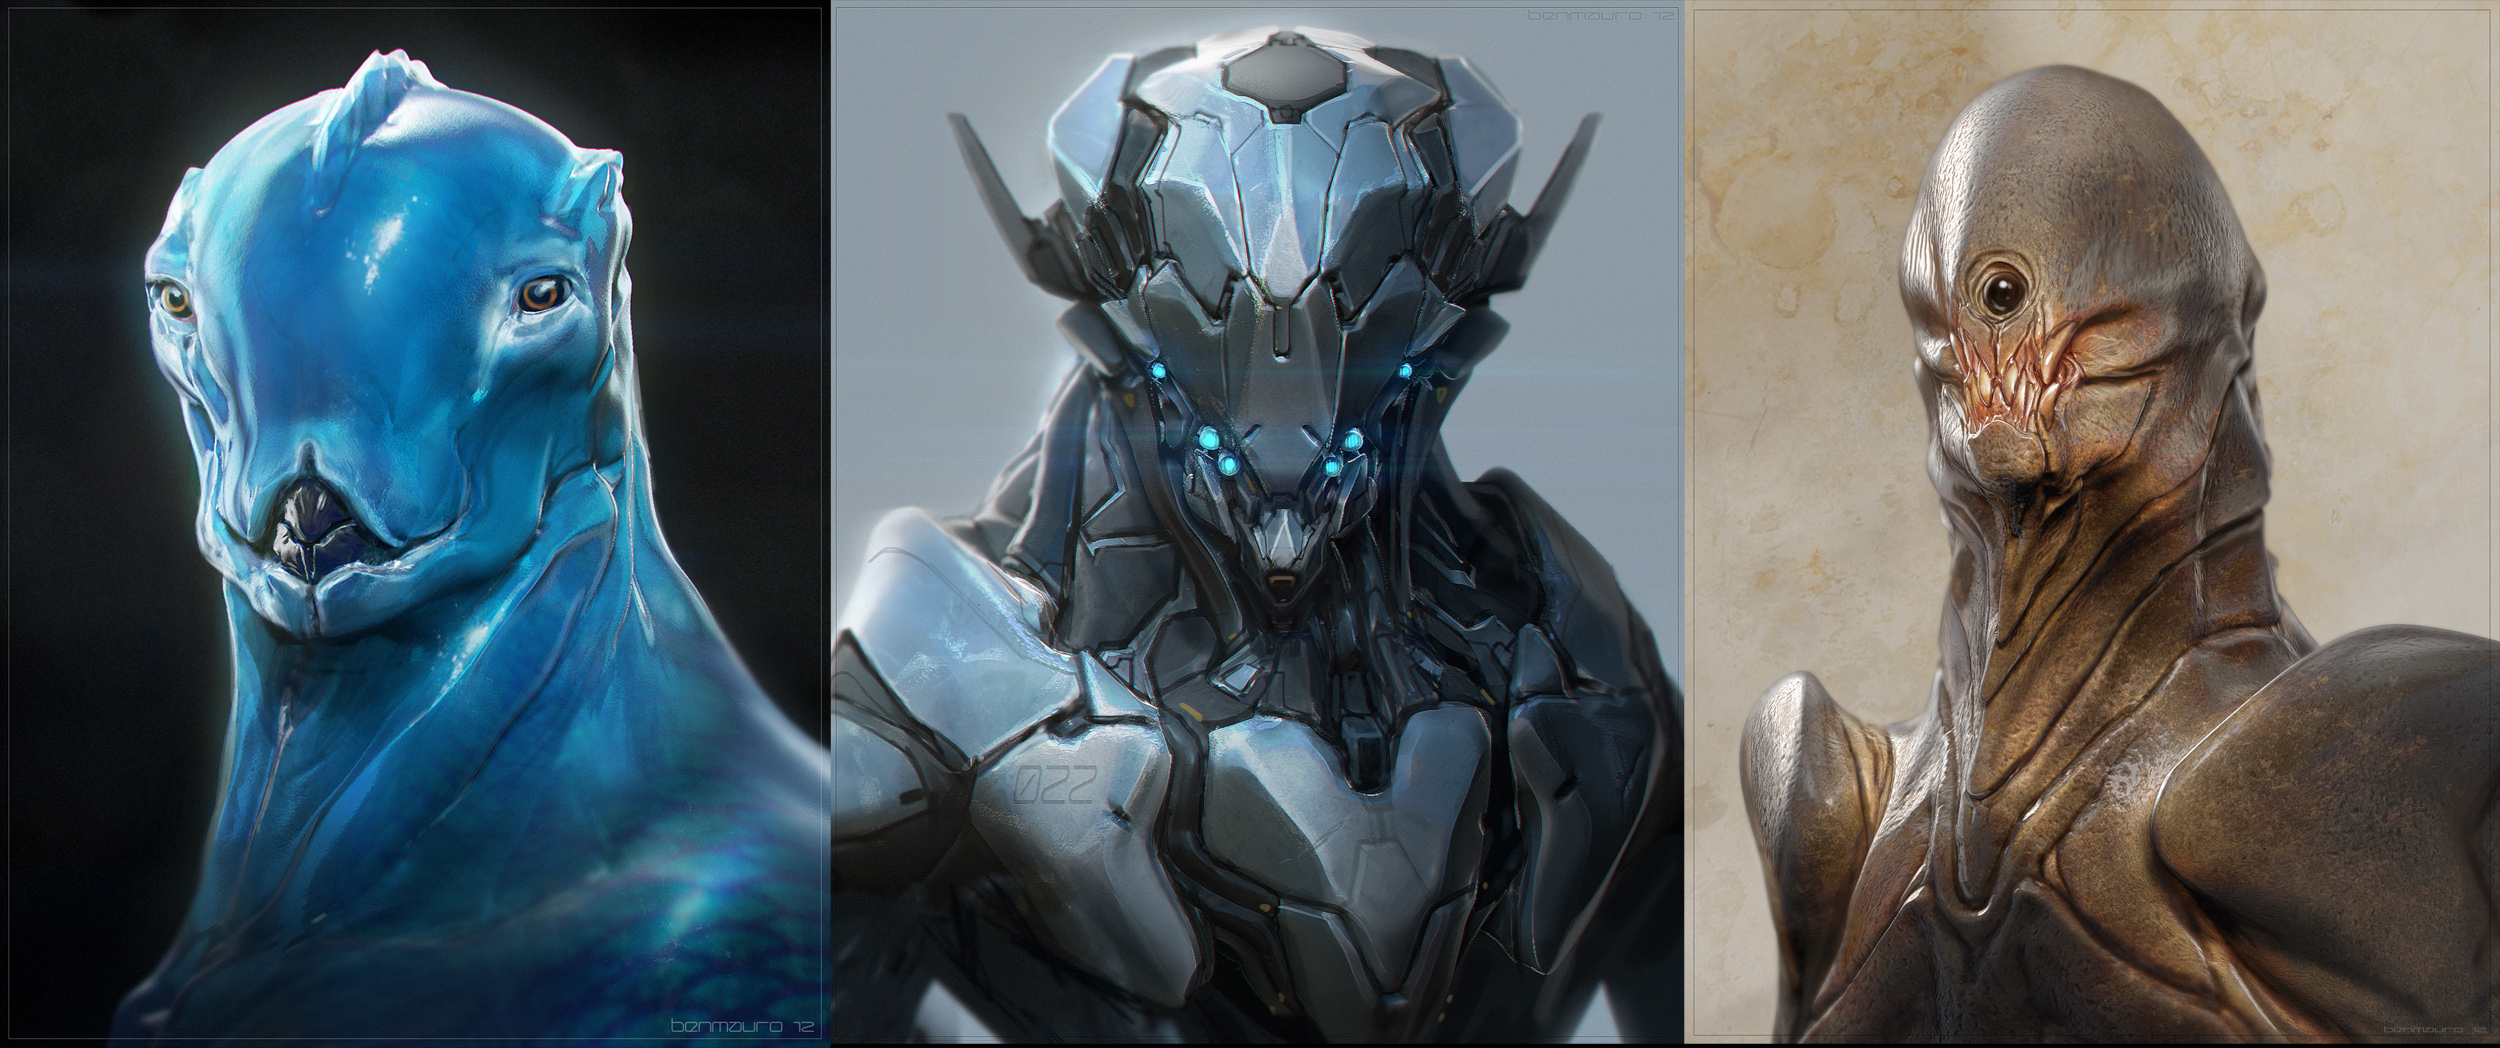 ZBrush for Concept Artists Vol. 1 Bonus Content by BenMauro